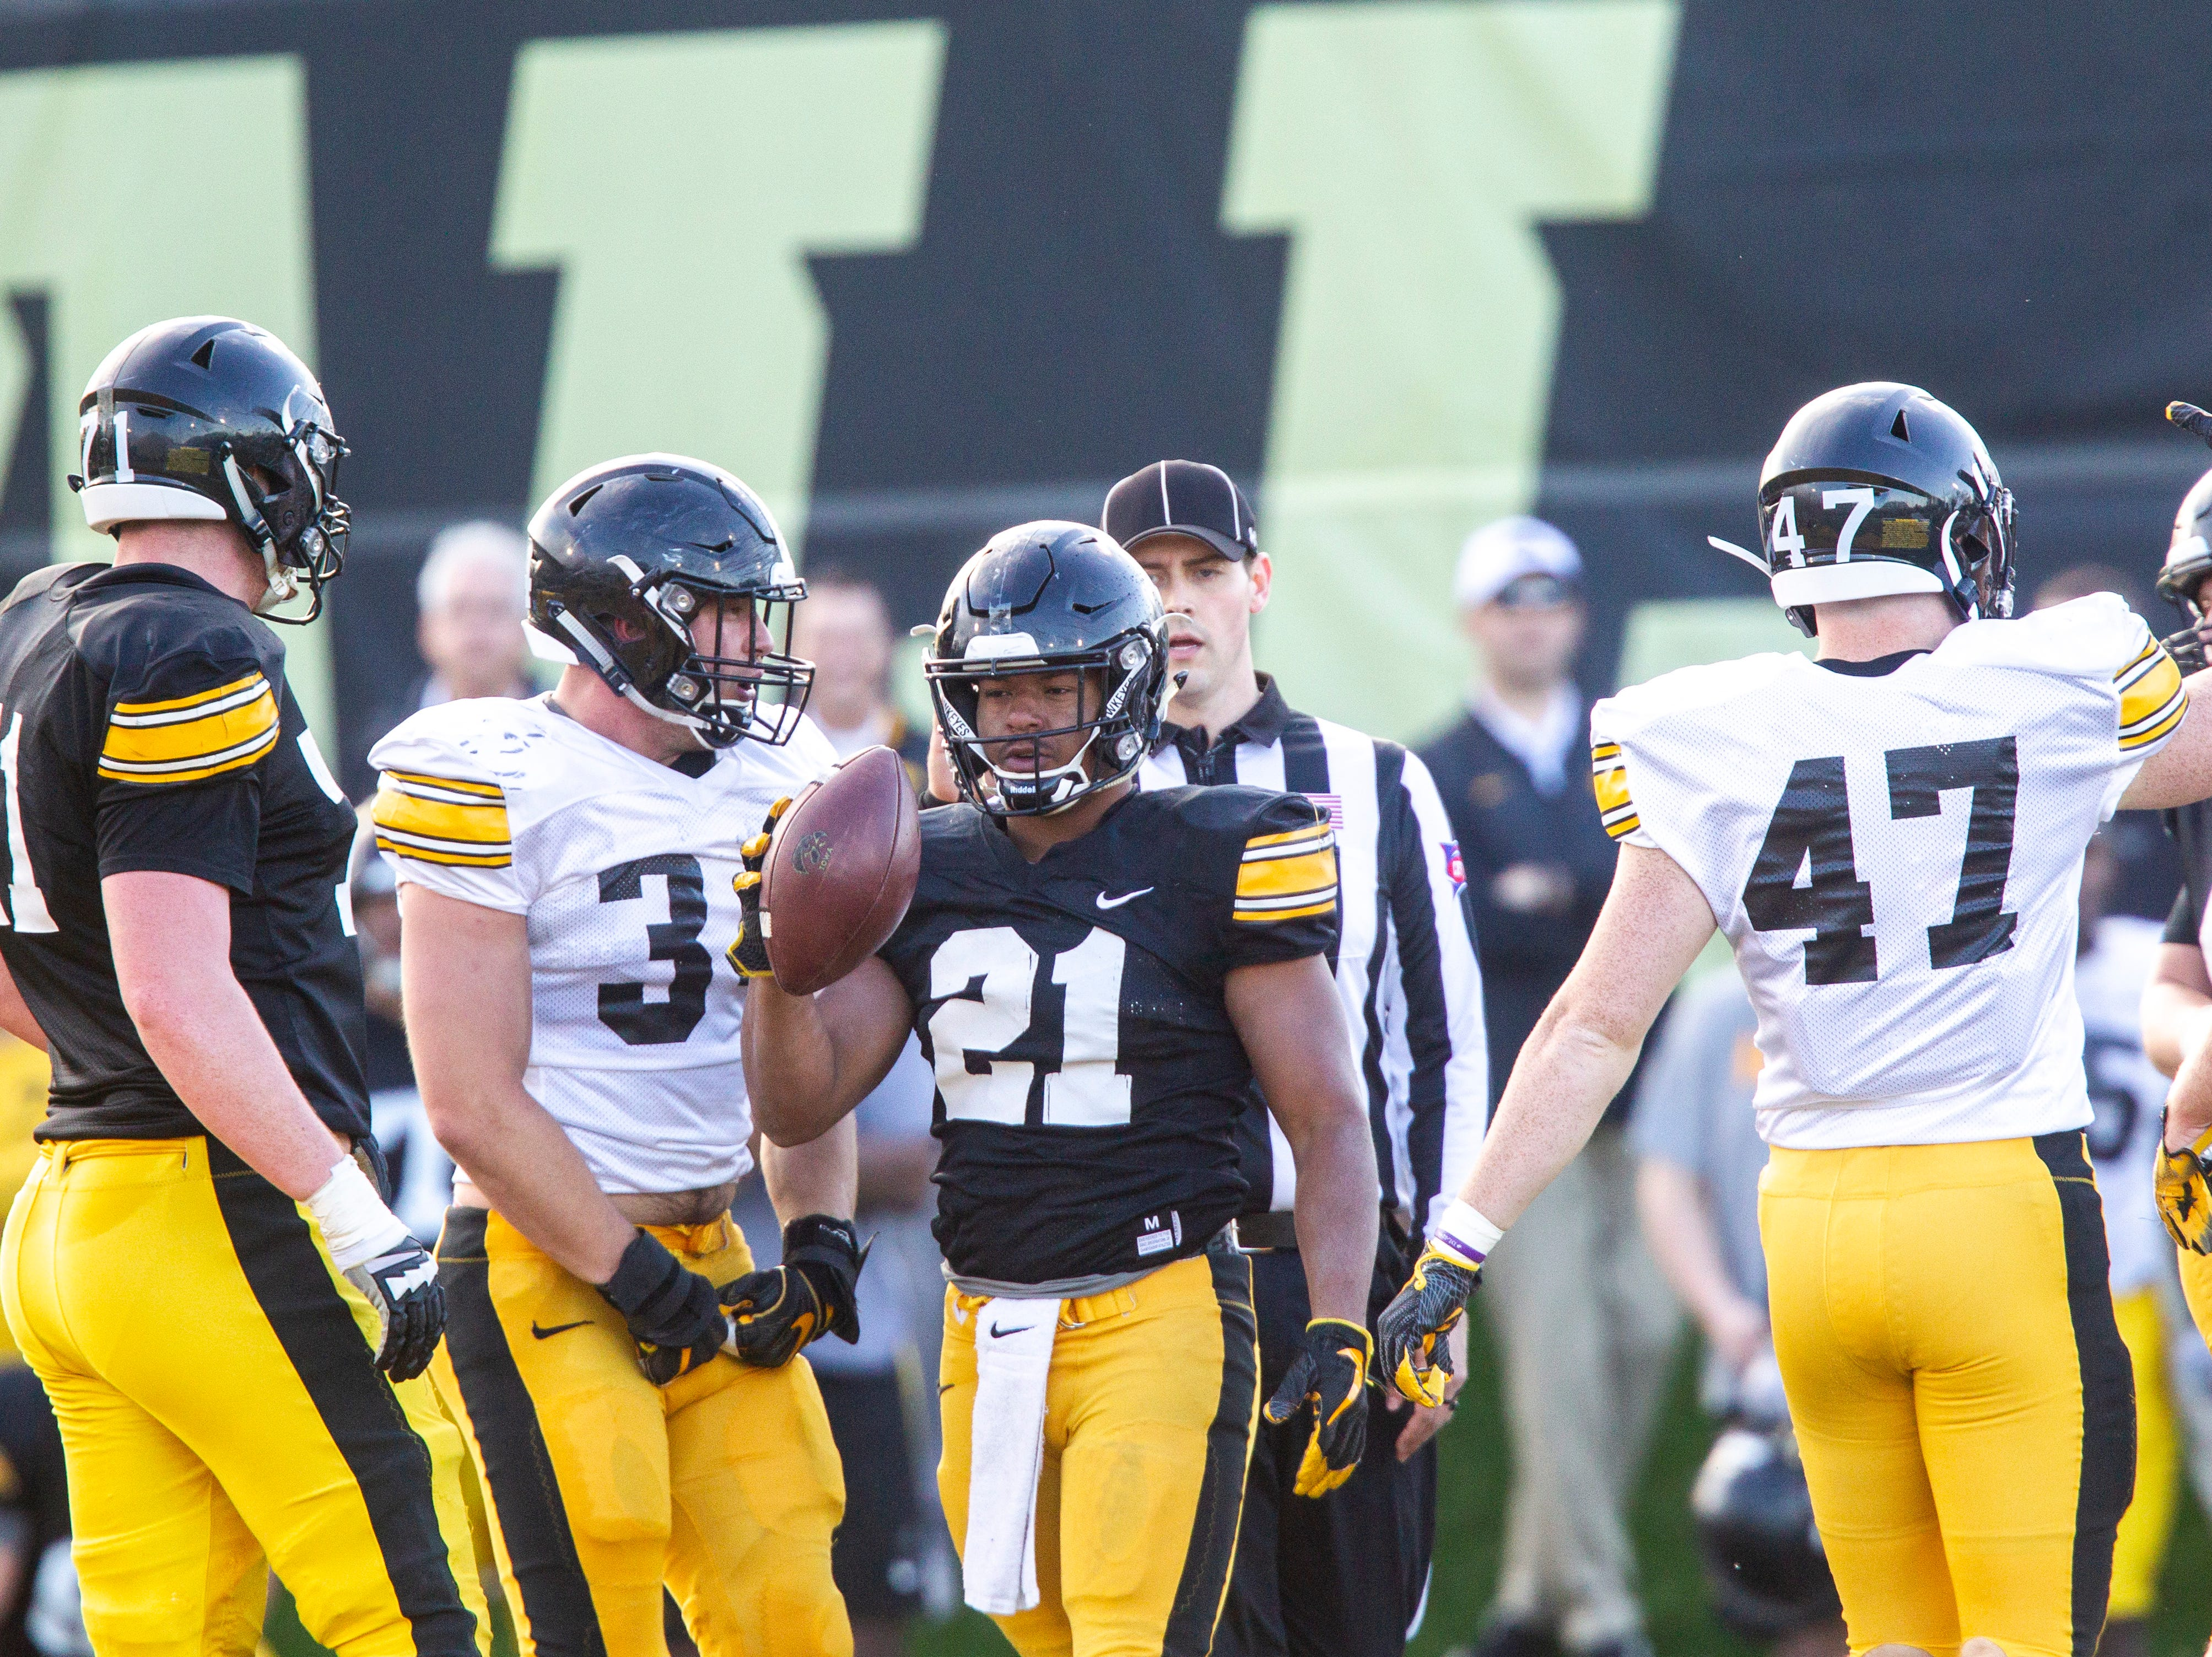 Iowa running back Ivory Kelly-Martin (21) walks back to the huddle as linebacker Kristian Welch (34) reacts to a stop during the final spring football practice, Friday, April 26, 2019, at the University of Iowa outdoor practice facility in Iowa City, Iowa.